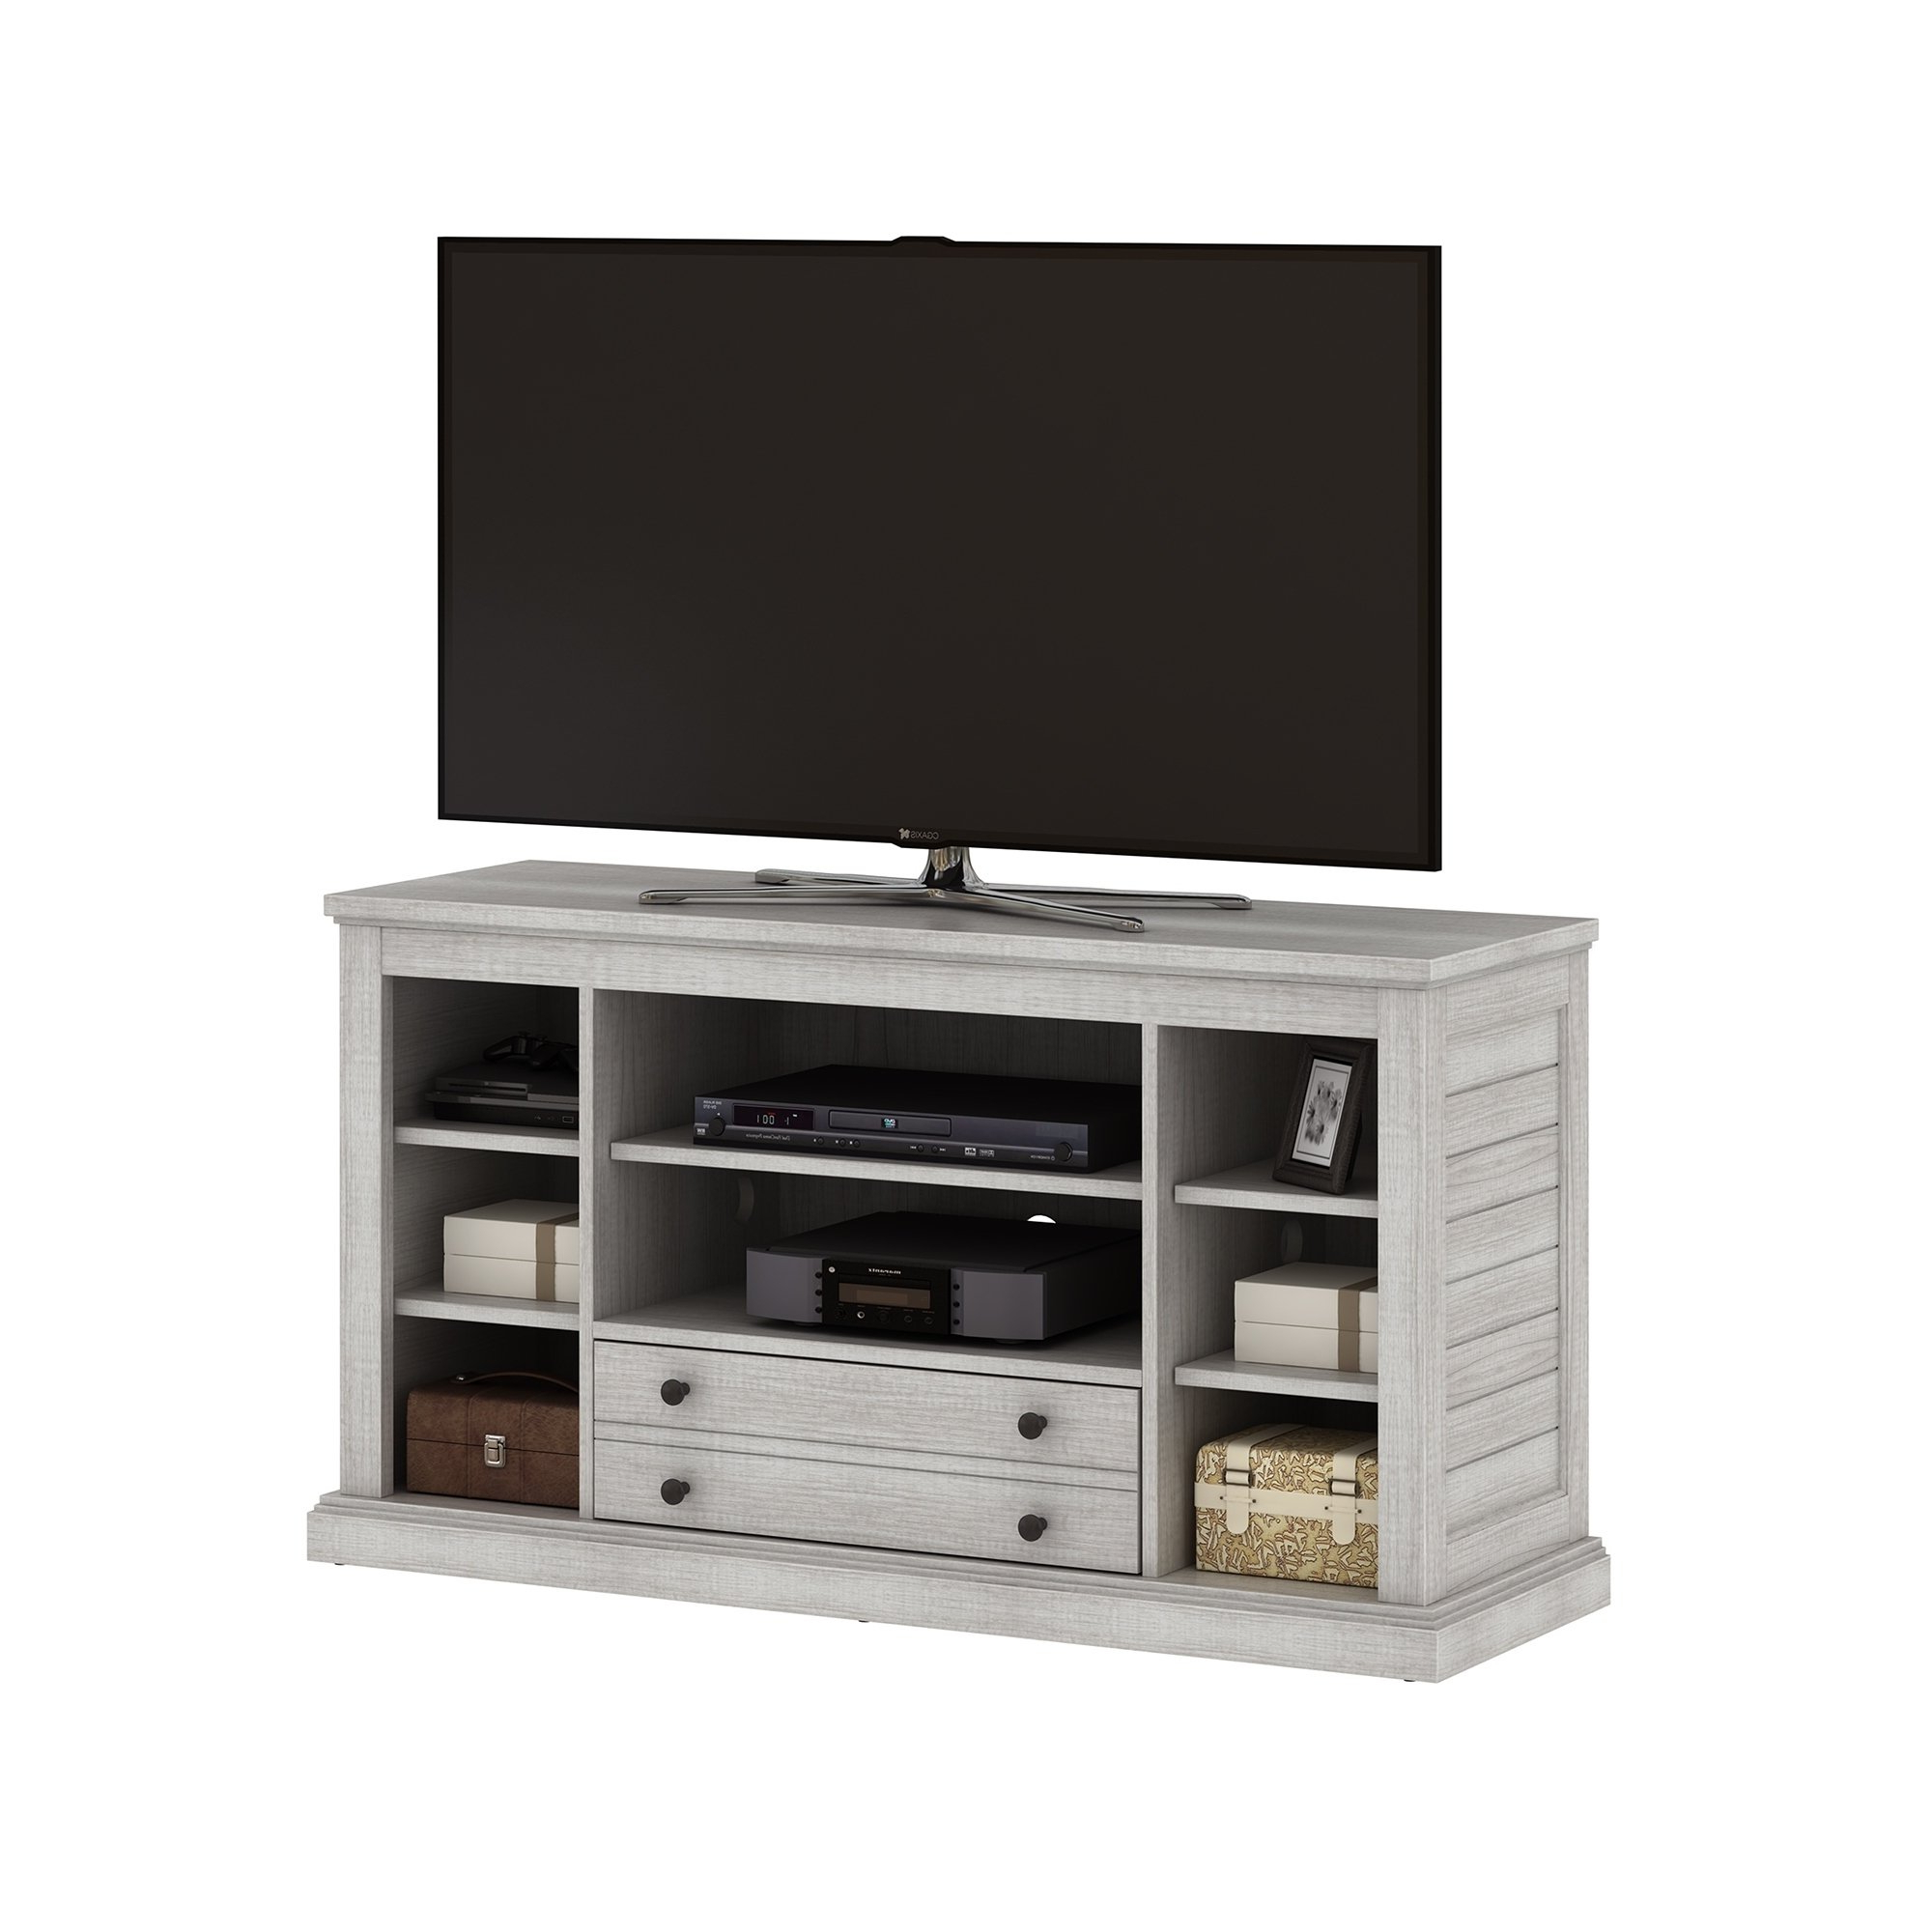 """Shop Abbott Commons Tv Stand For Tvs Up To 55"""", Sargent Oak – Free Intended For Abbot 60 Inch Tv Stands (View 12 of 20)"""